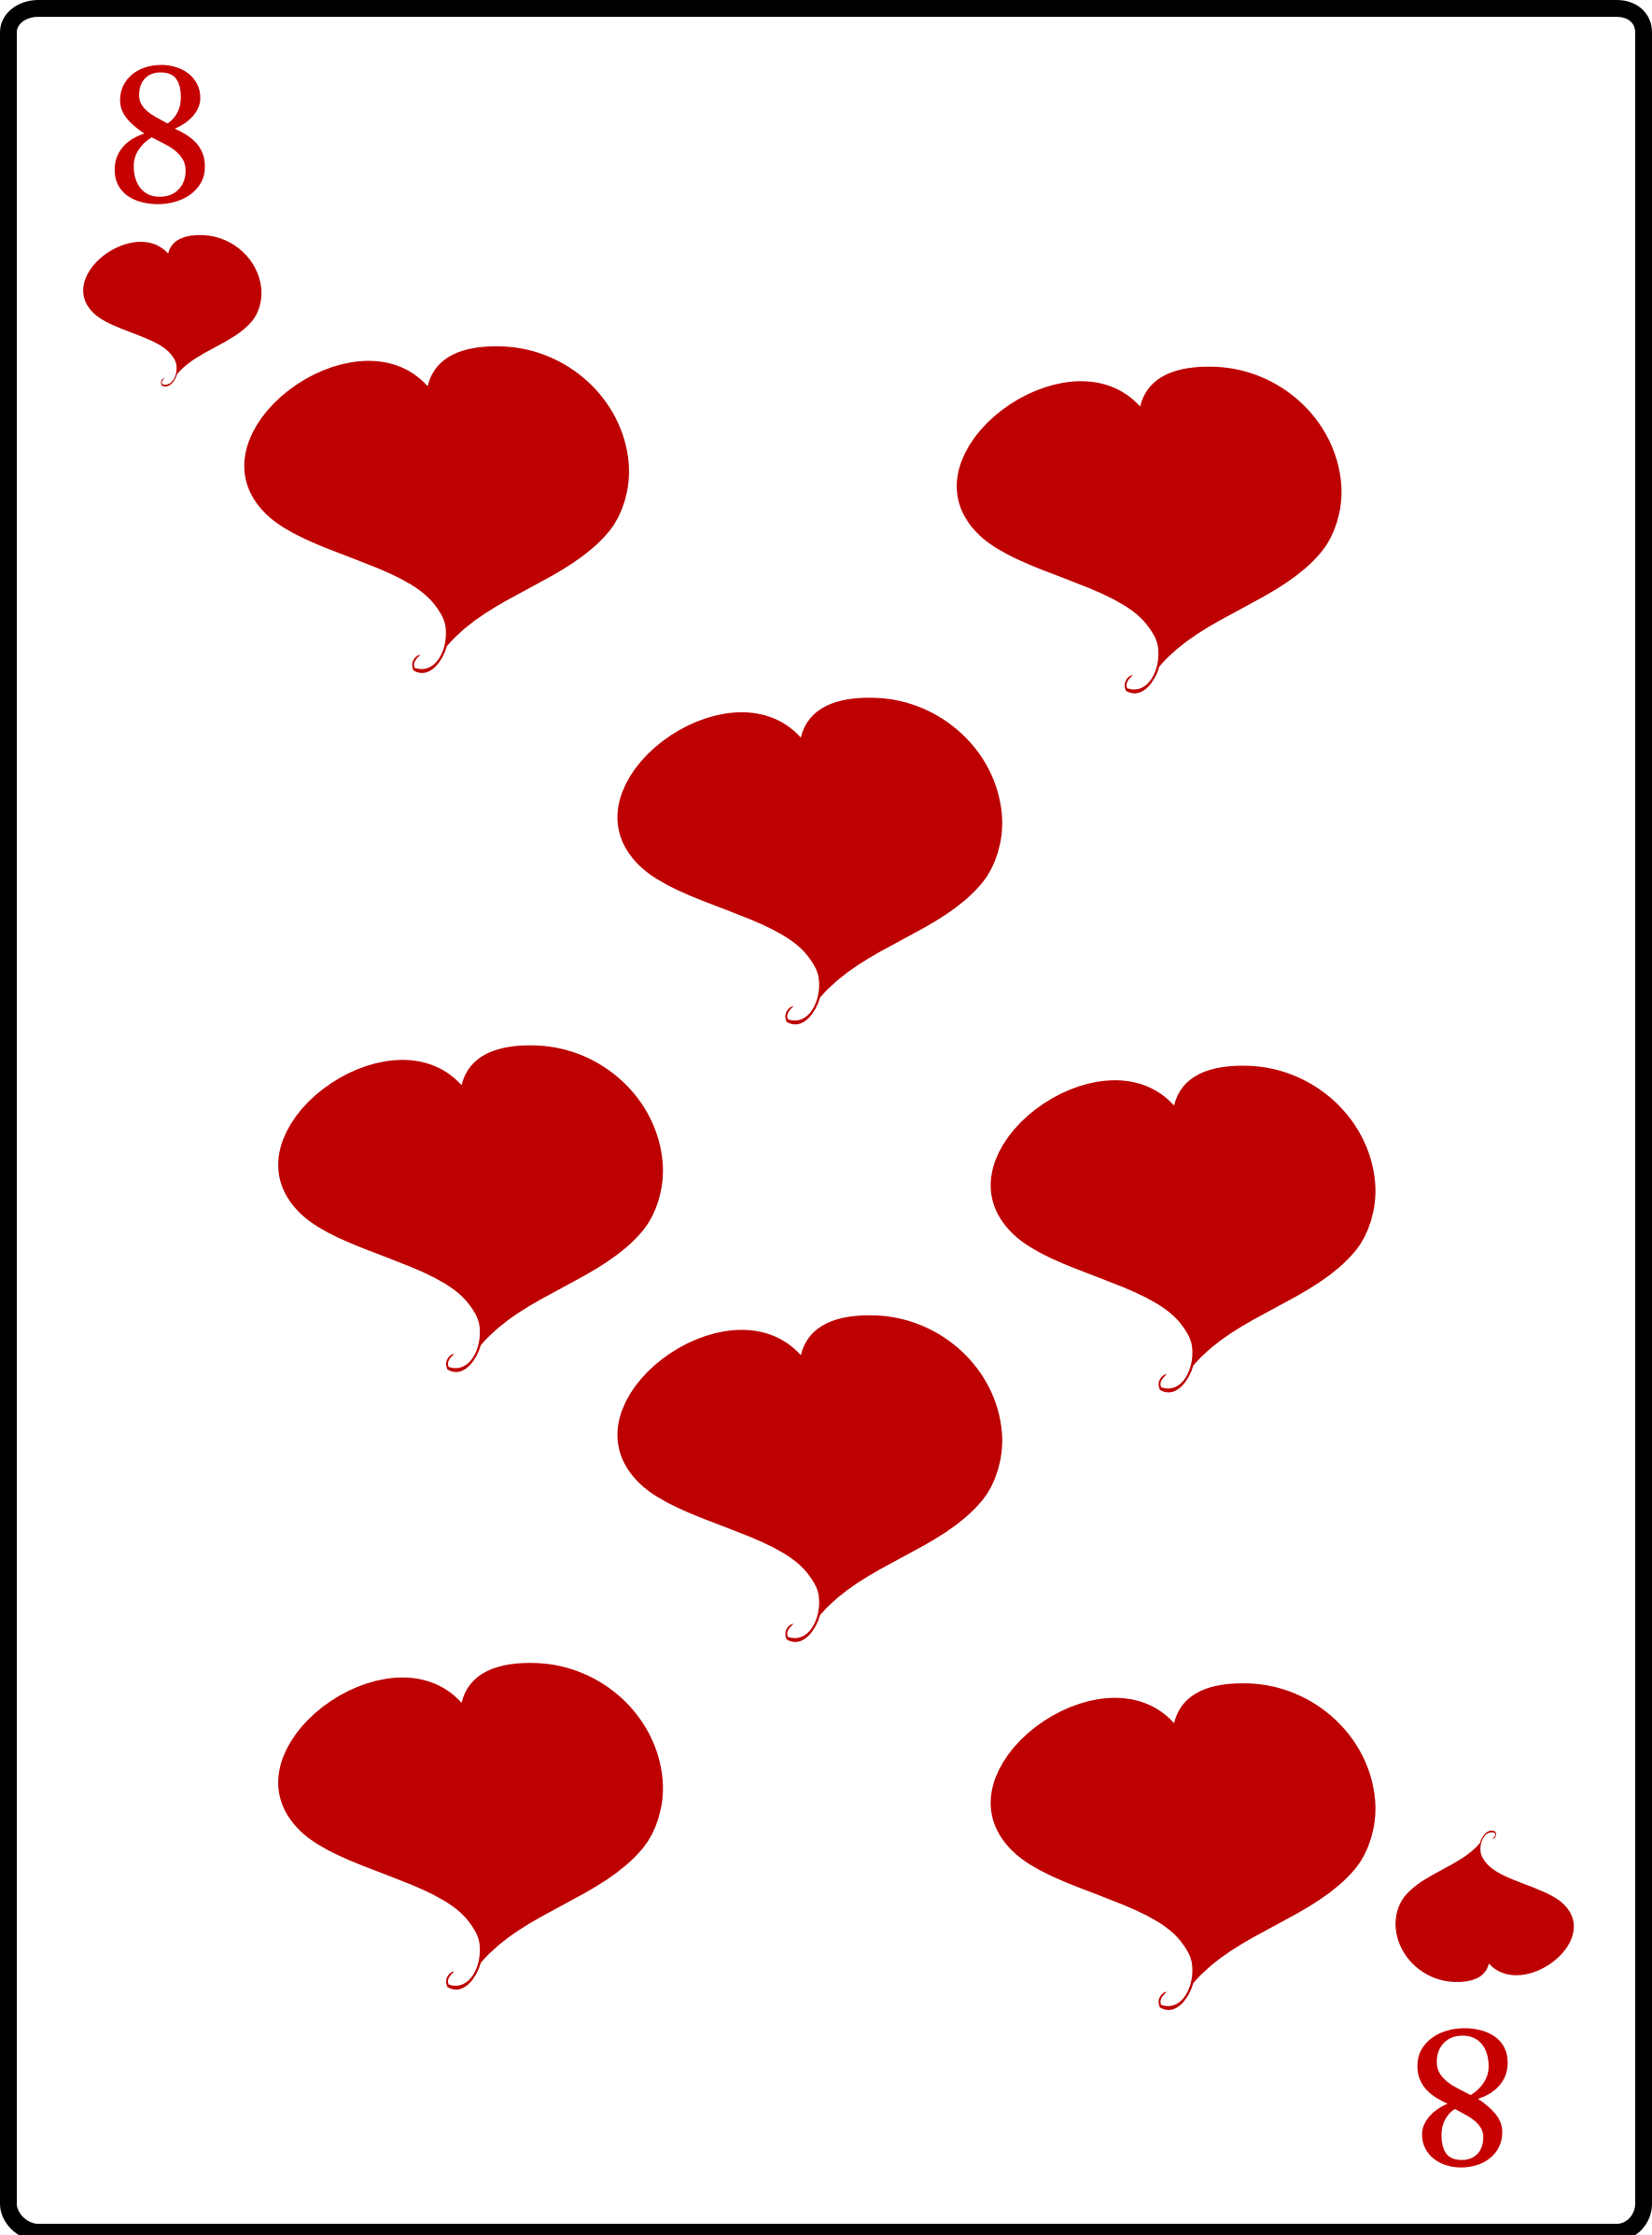 8 of Hearts by casino